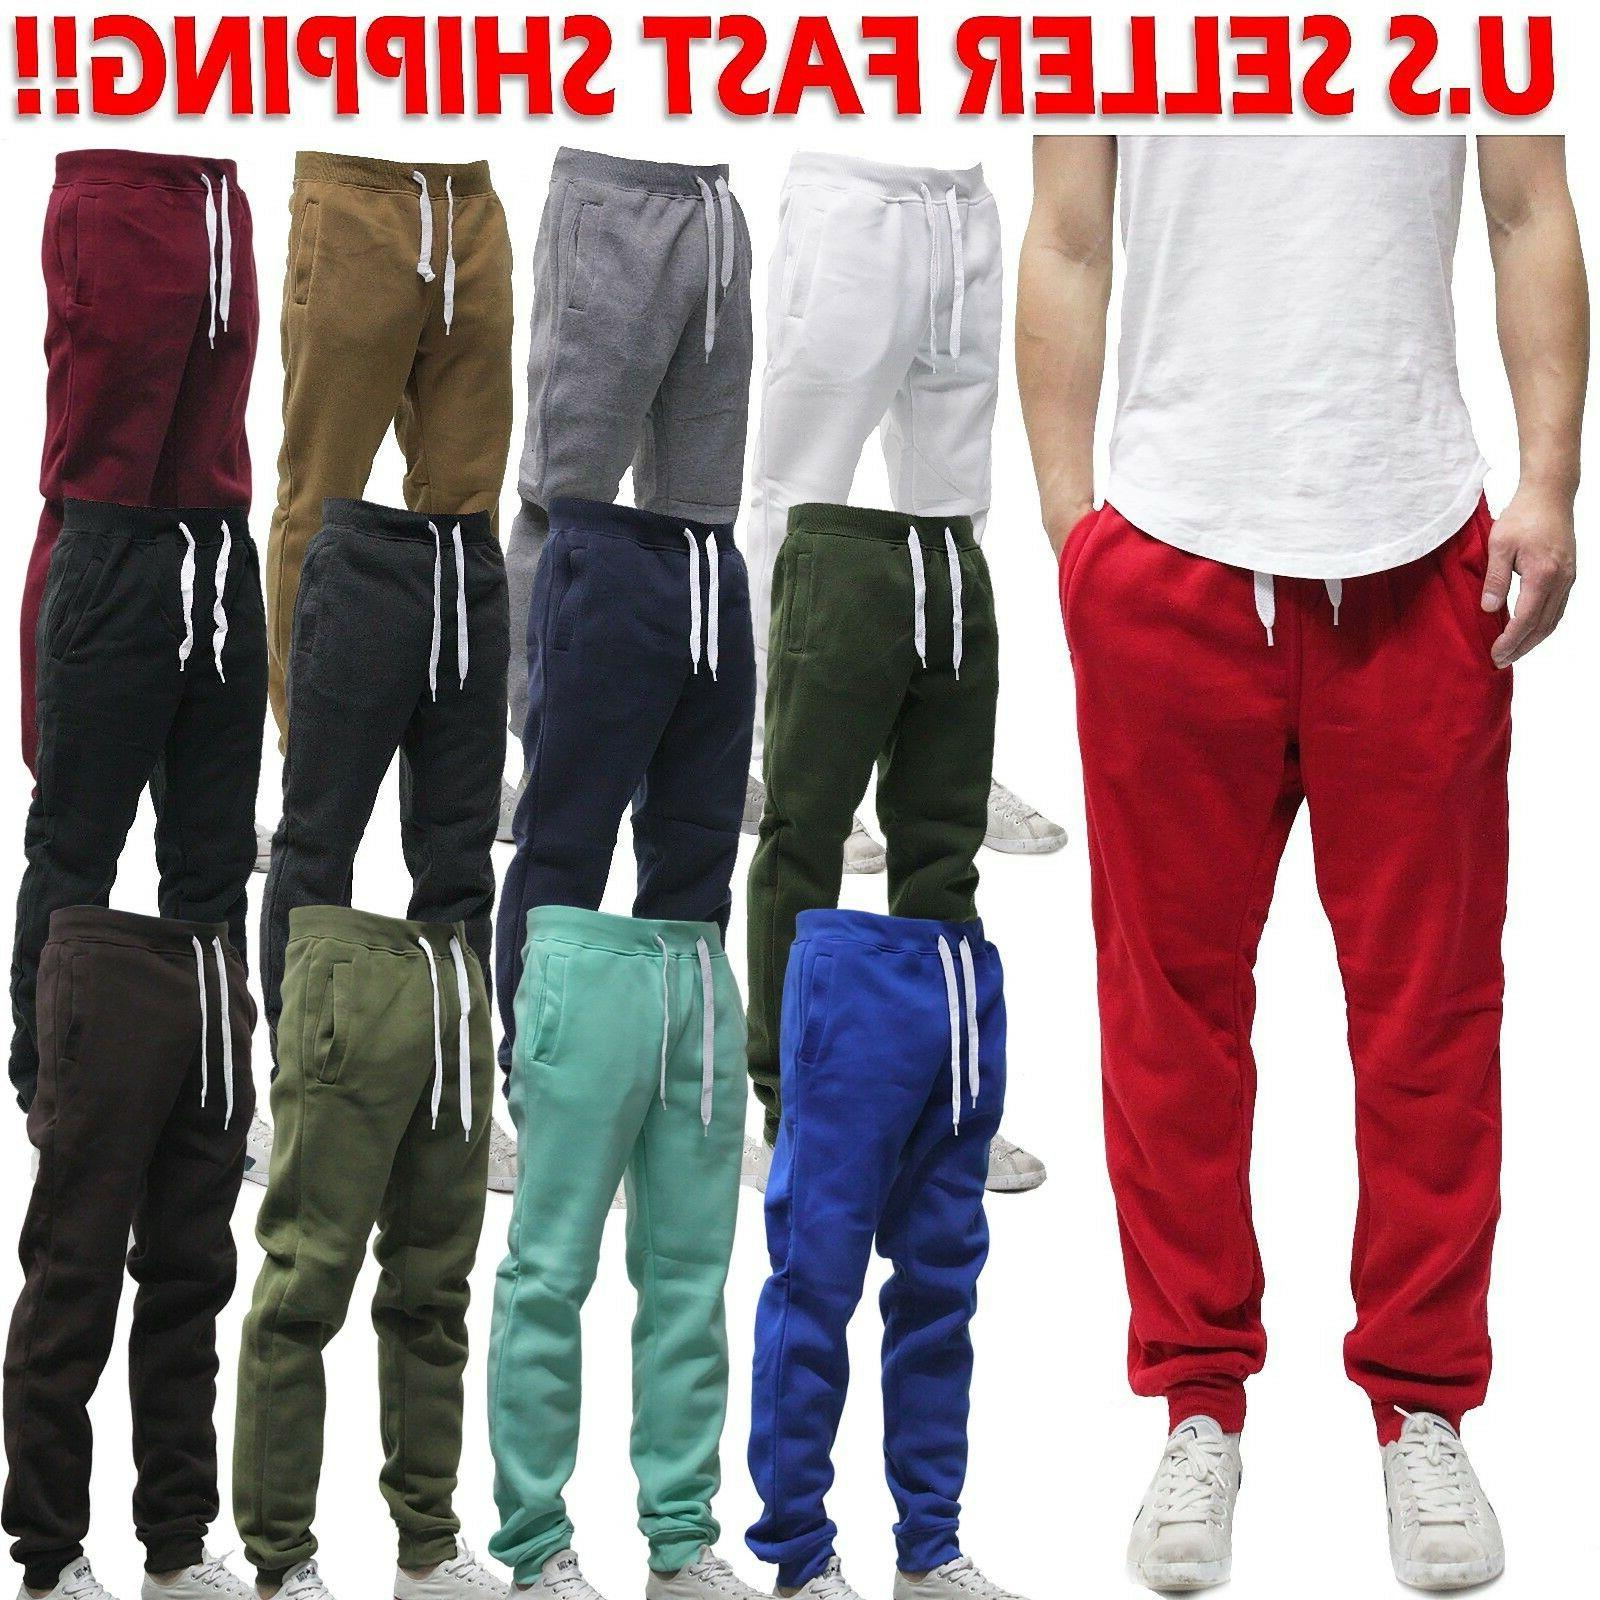 sp jogger pants active solid fleece sweat